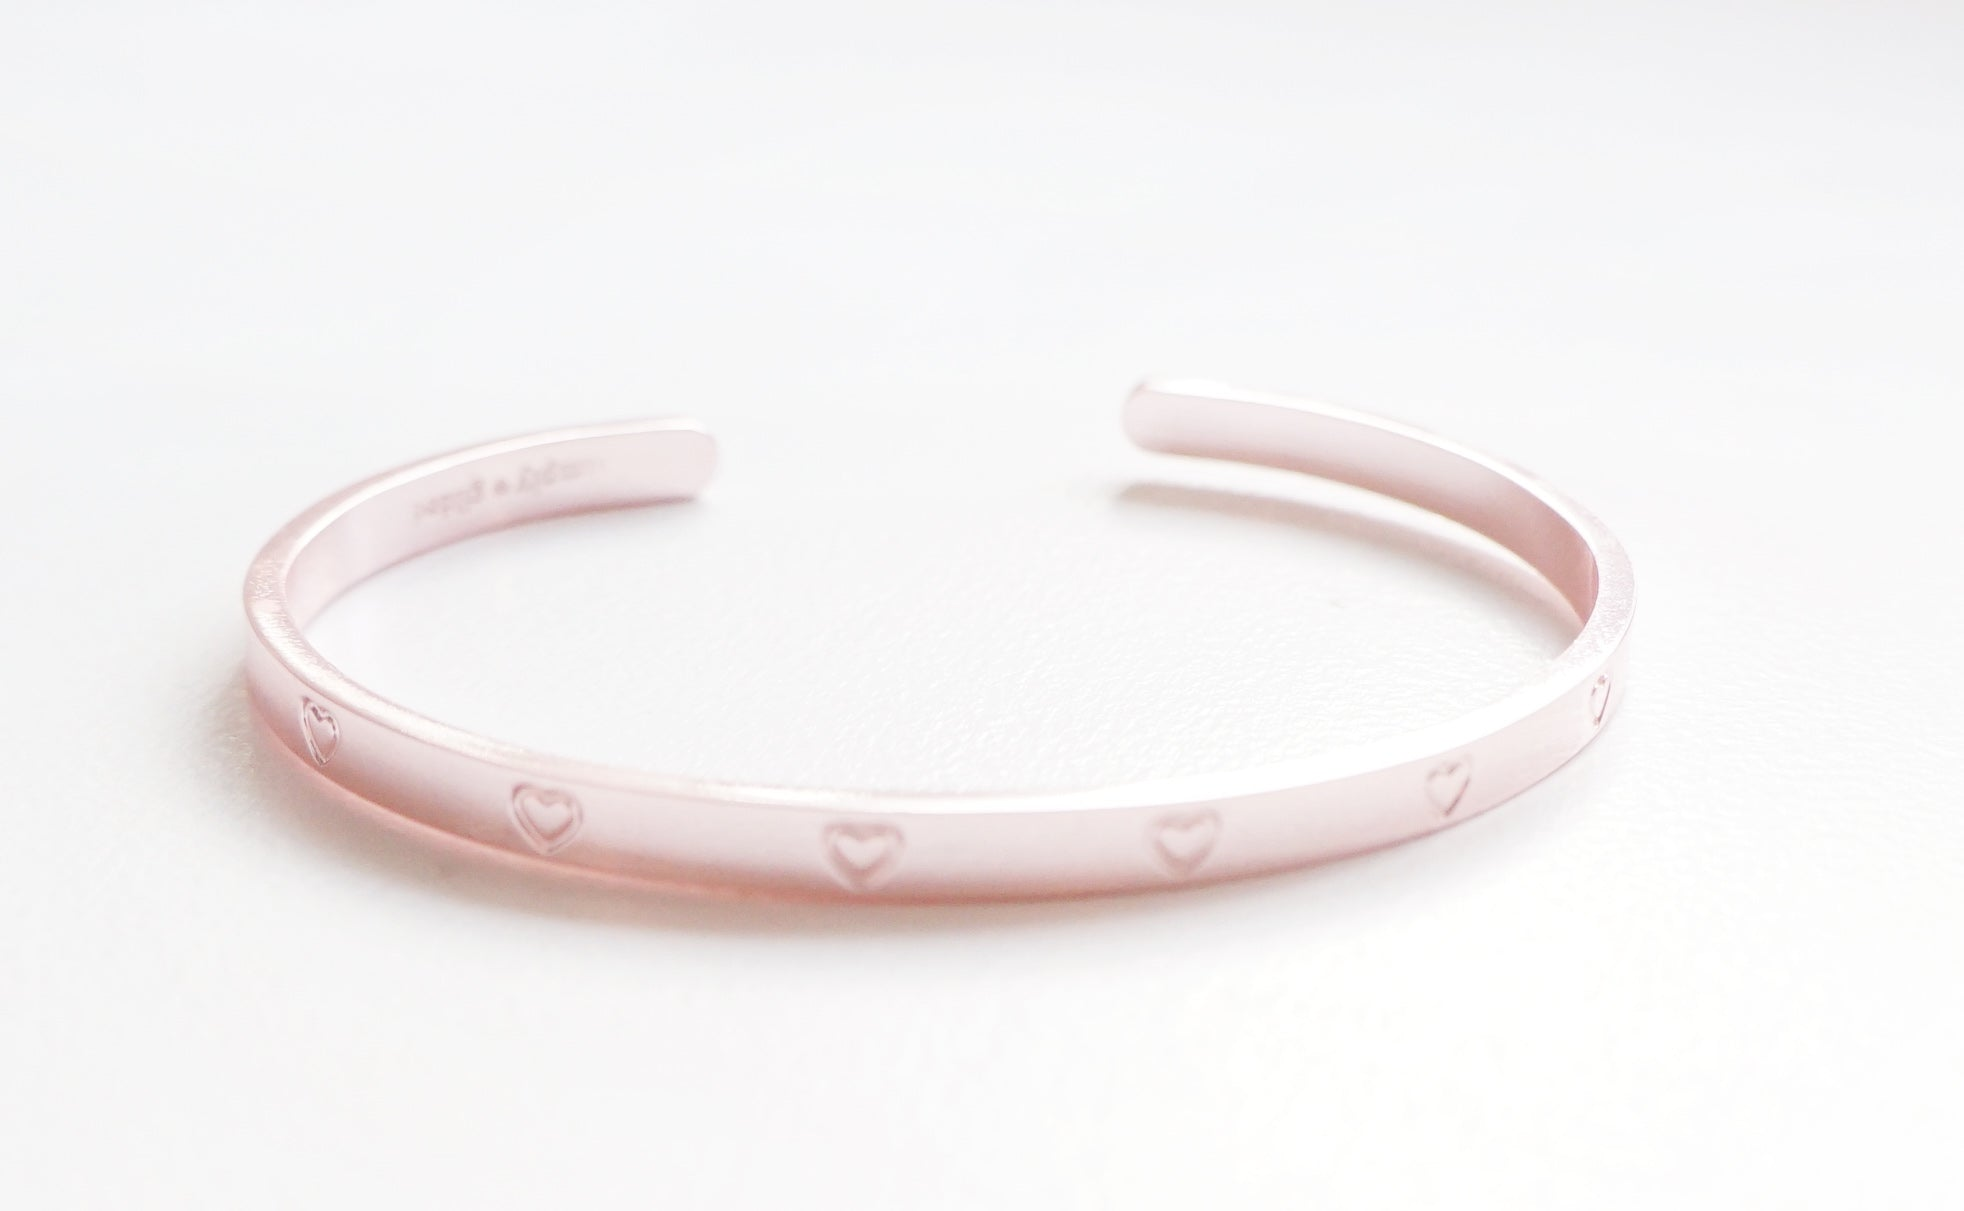 CUFF BRACELET - OPEN HEART ENGRAVED CUFF - rose gold 2019 12 days box/D10 (January 31 Mini Release)